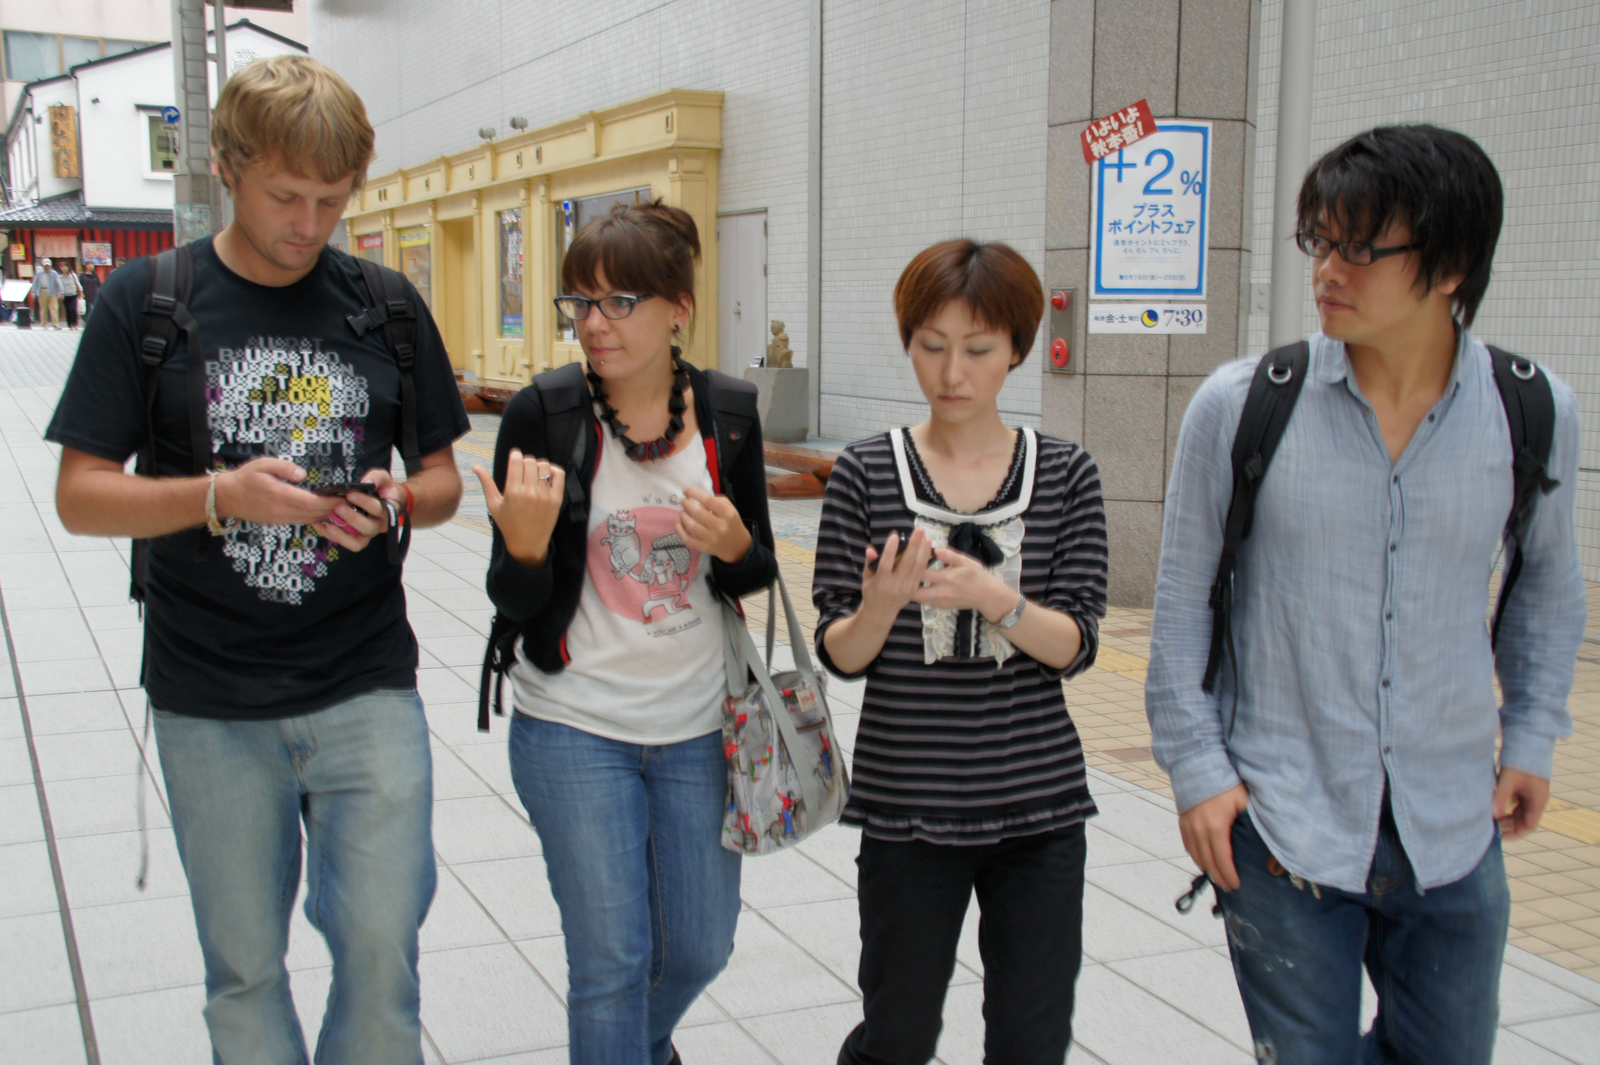 Caucasian couple walk next to Japanese couple in Japan